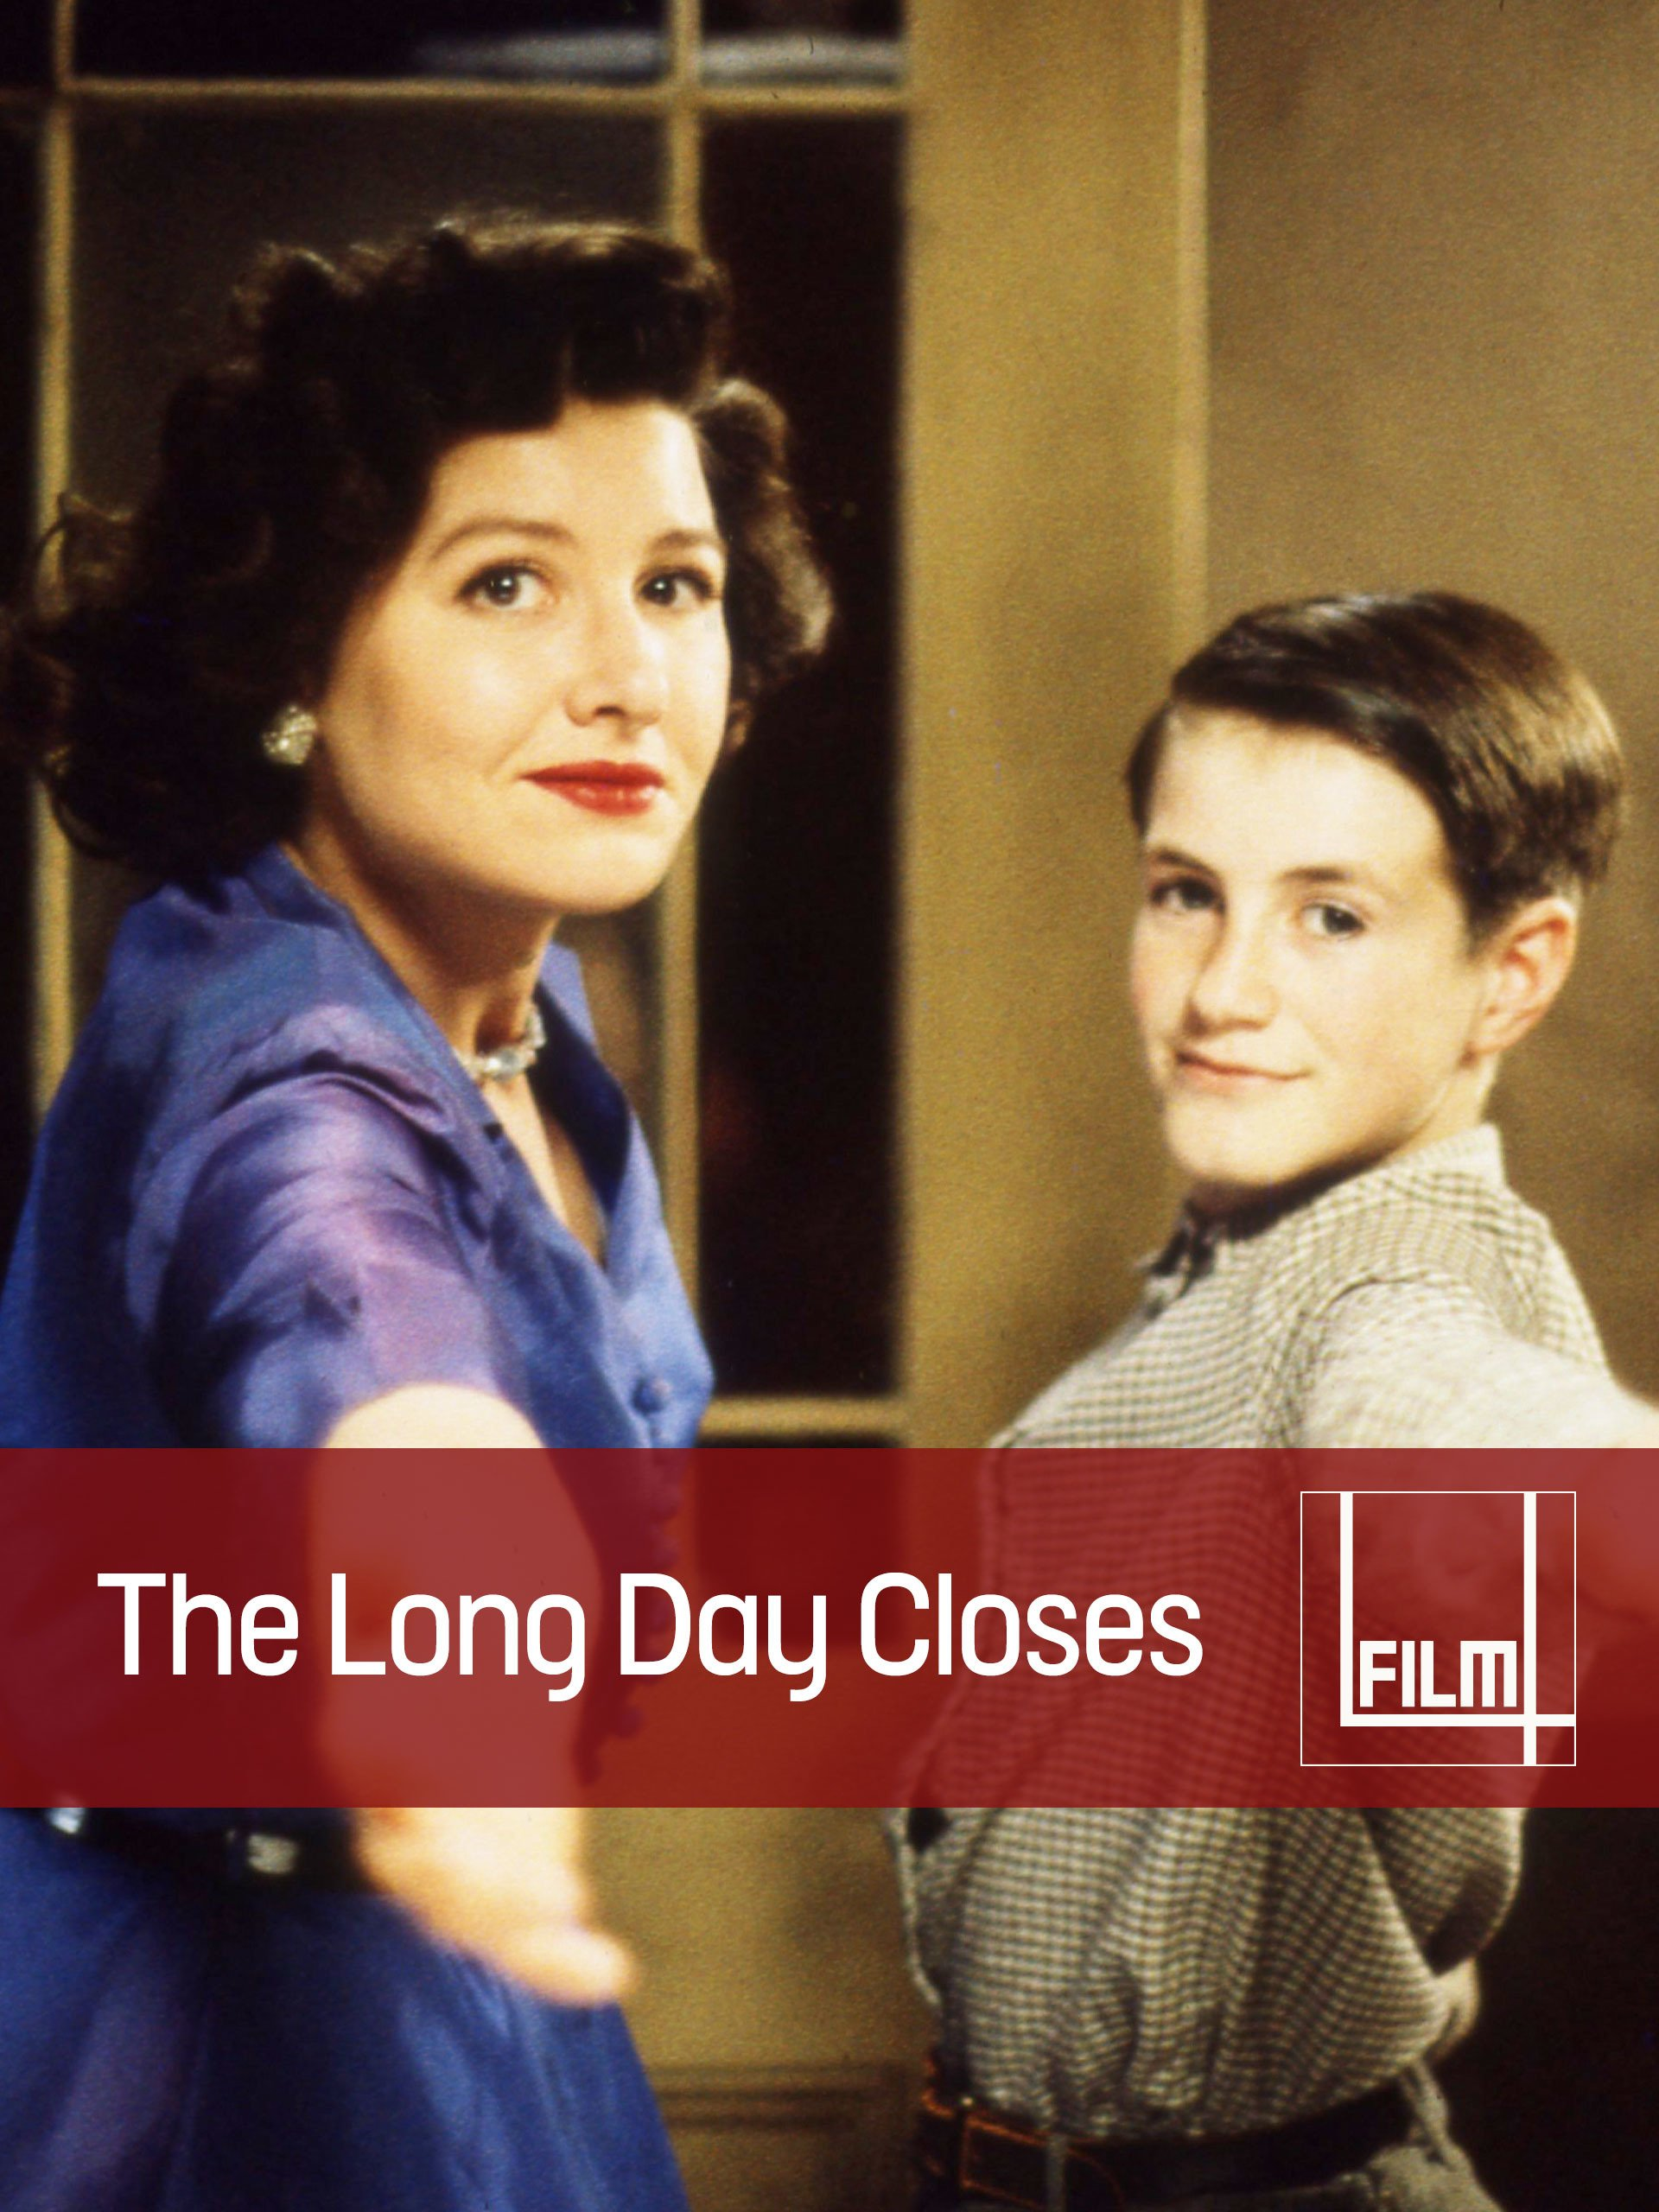 The Long Day Closes on Amazon Prime Video UK